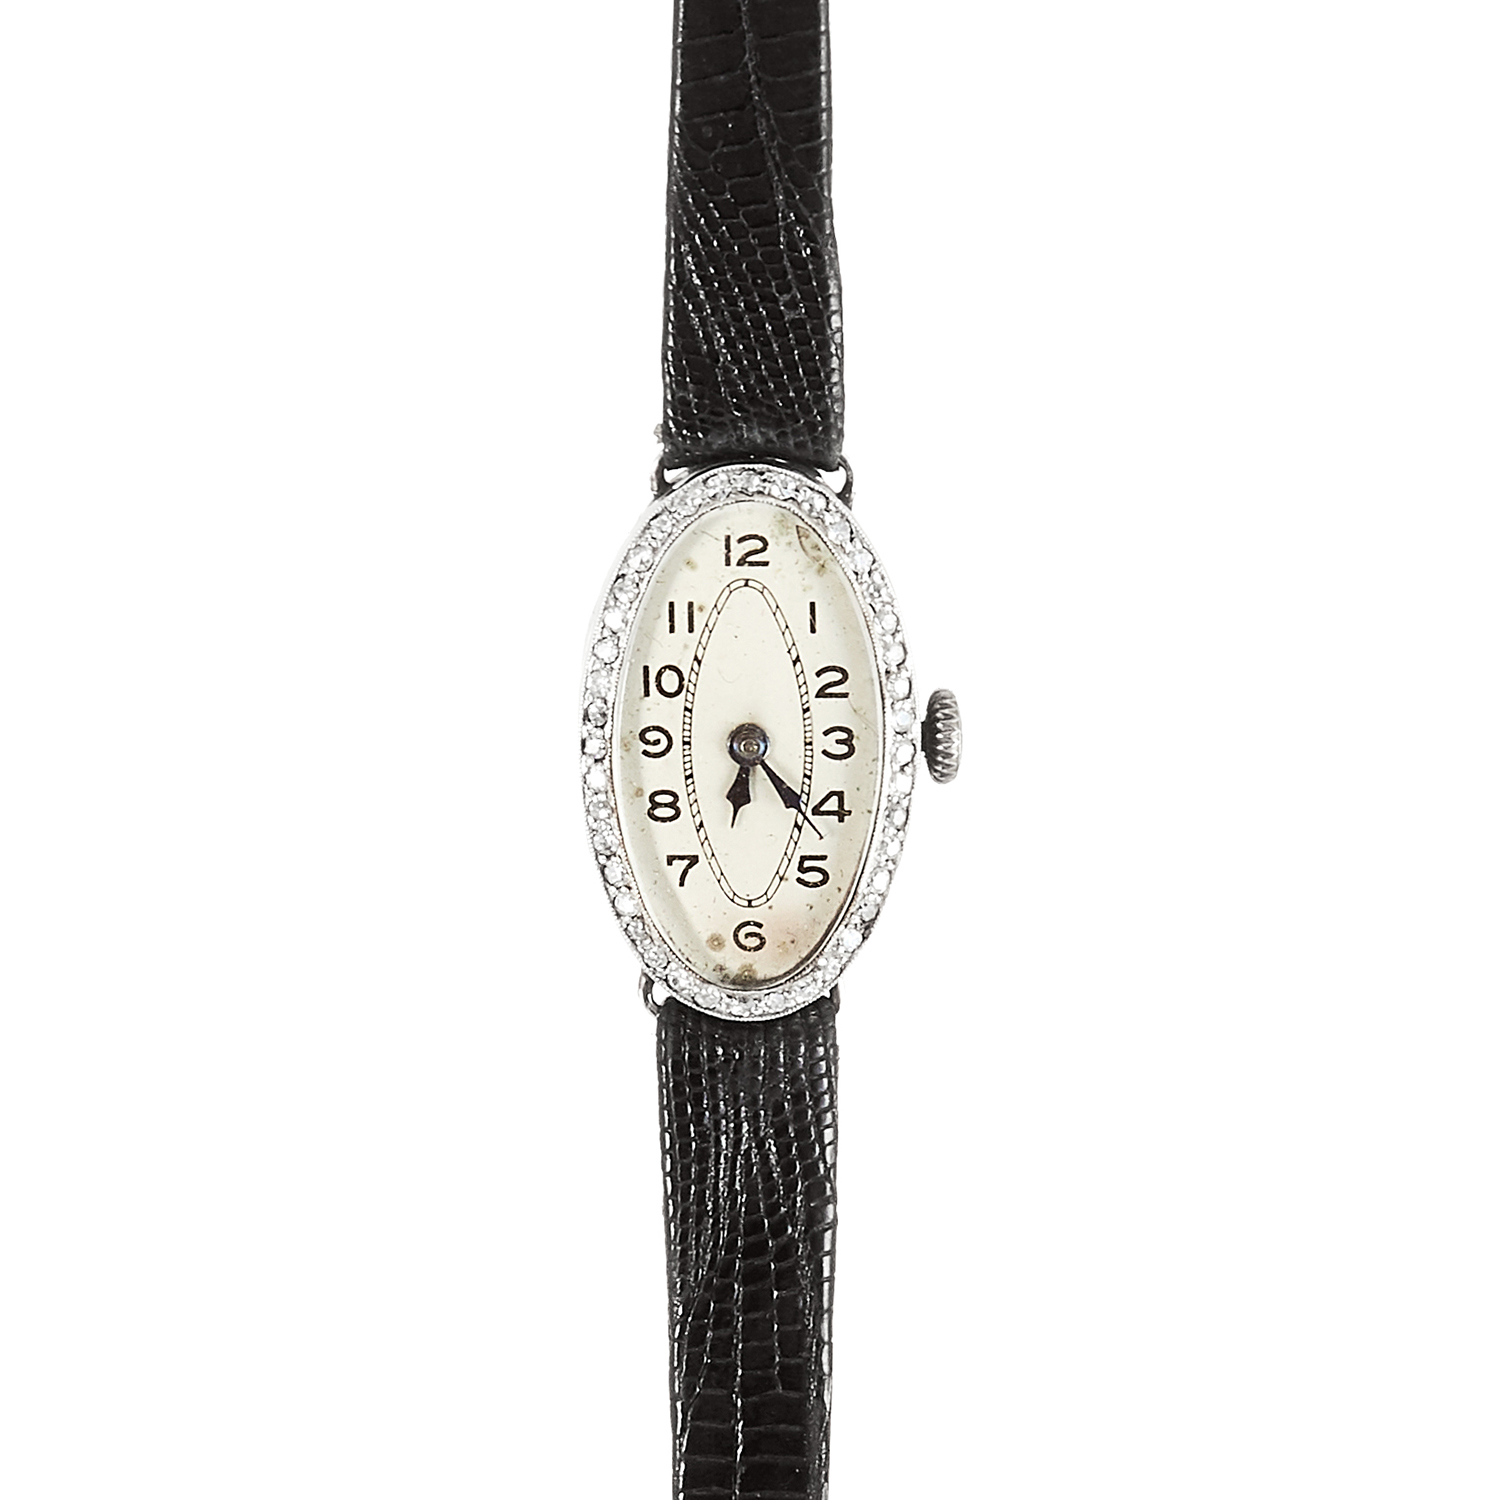 Los 15 - AN ANTIQUE ART DECO DIAMOND COCKTAIL WATCH, CIRCA 1920 in platinum, the oval face encircled with